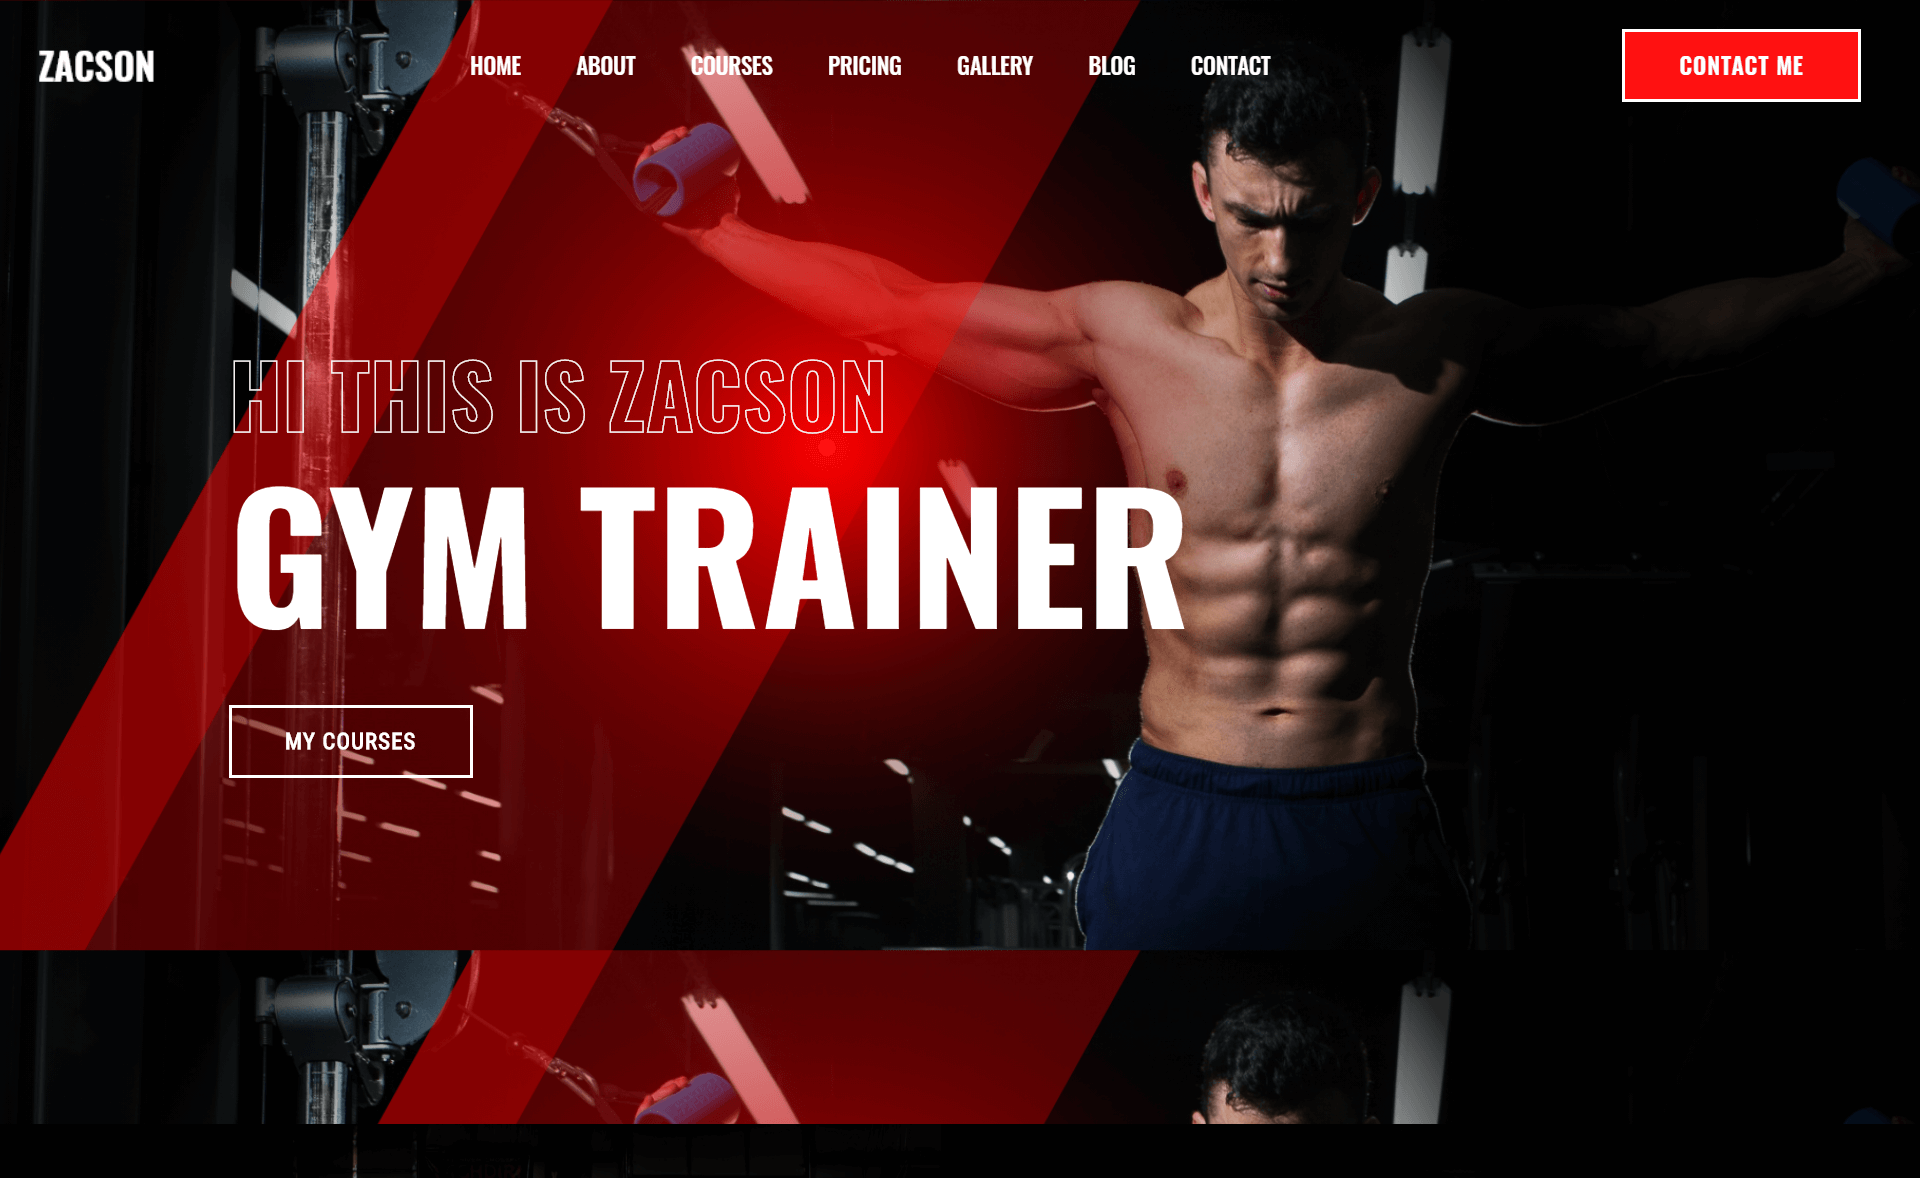 Free Responsive Bootstrap 4 HTML5 Fitness Website Template